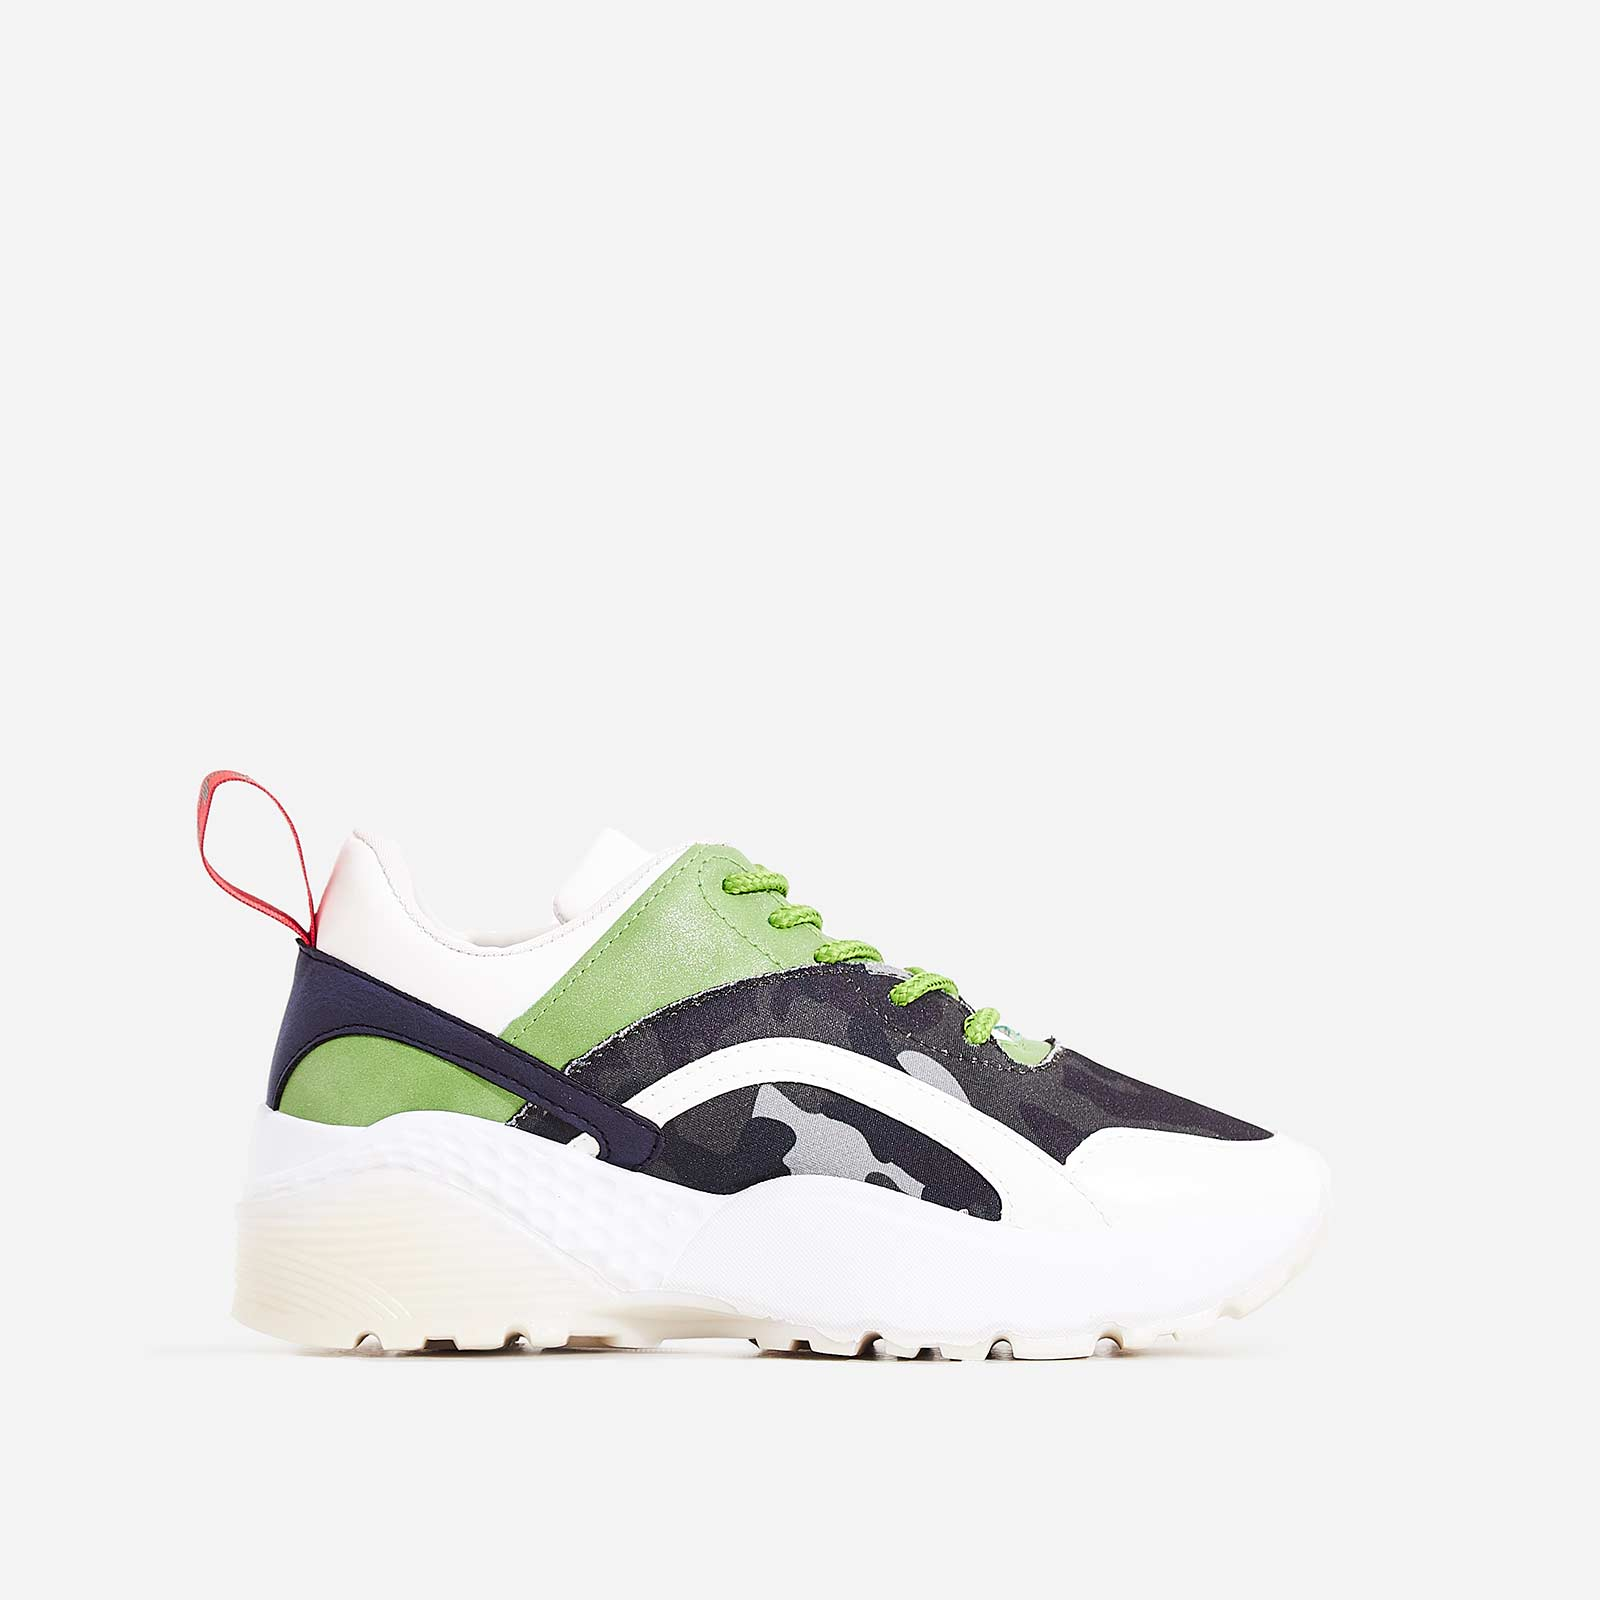 Aero Chunky Sole Trainer In Green Camouflage